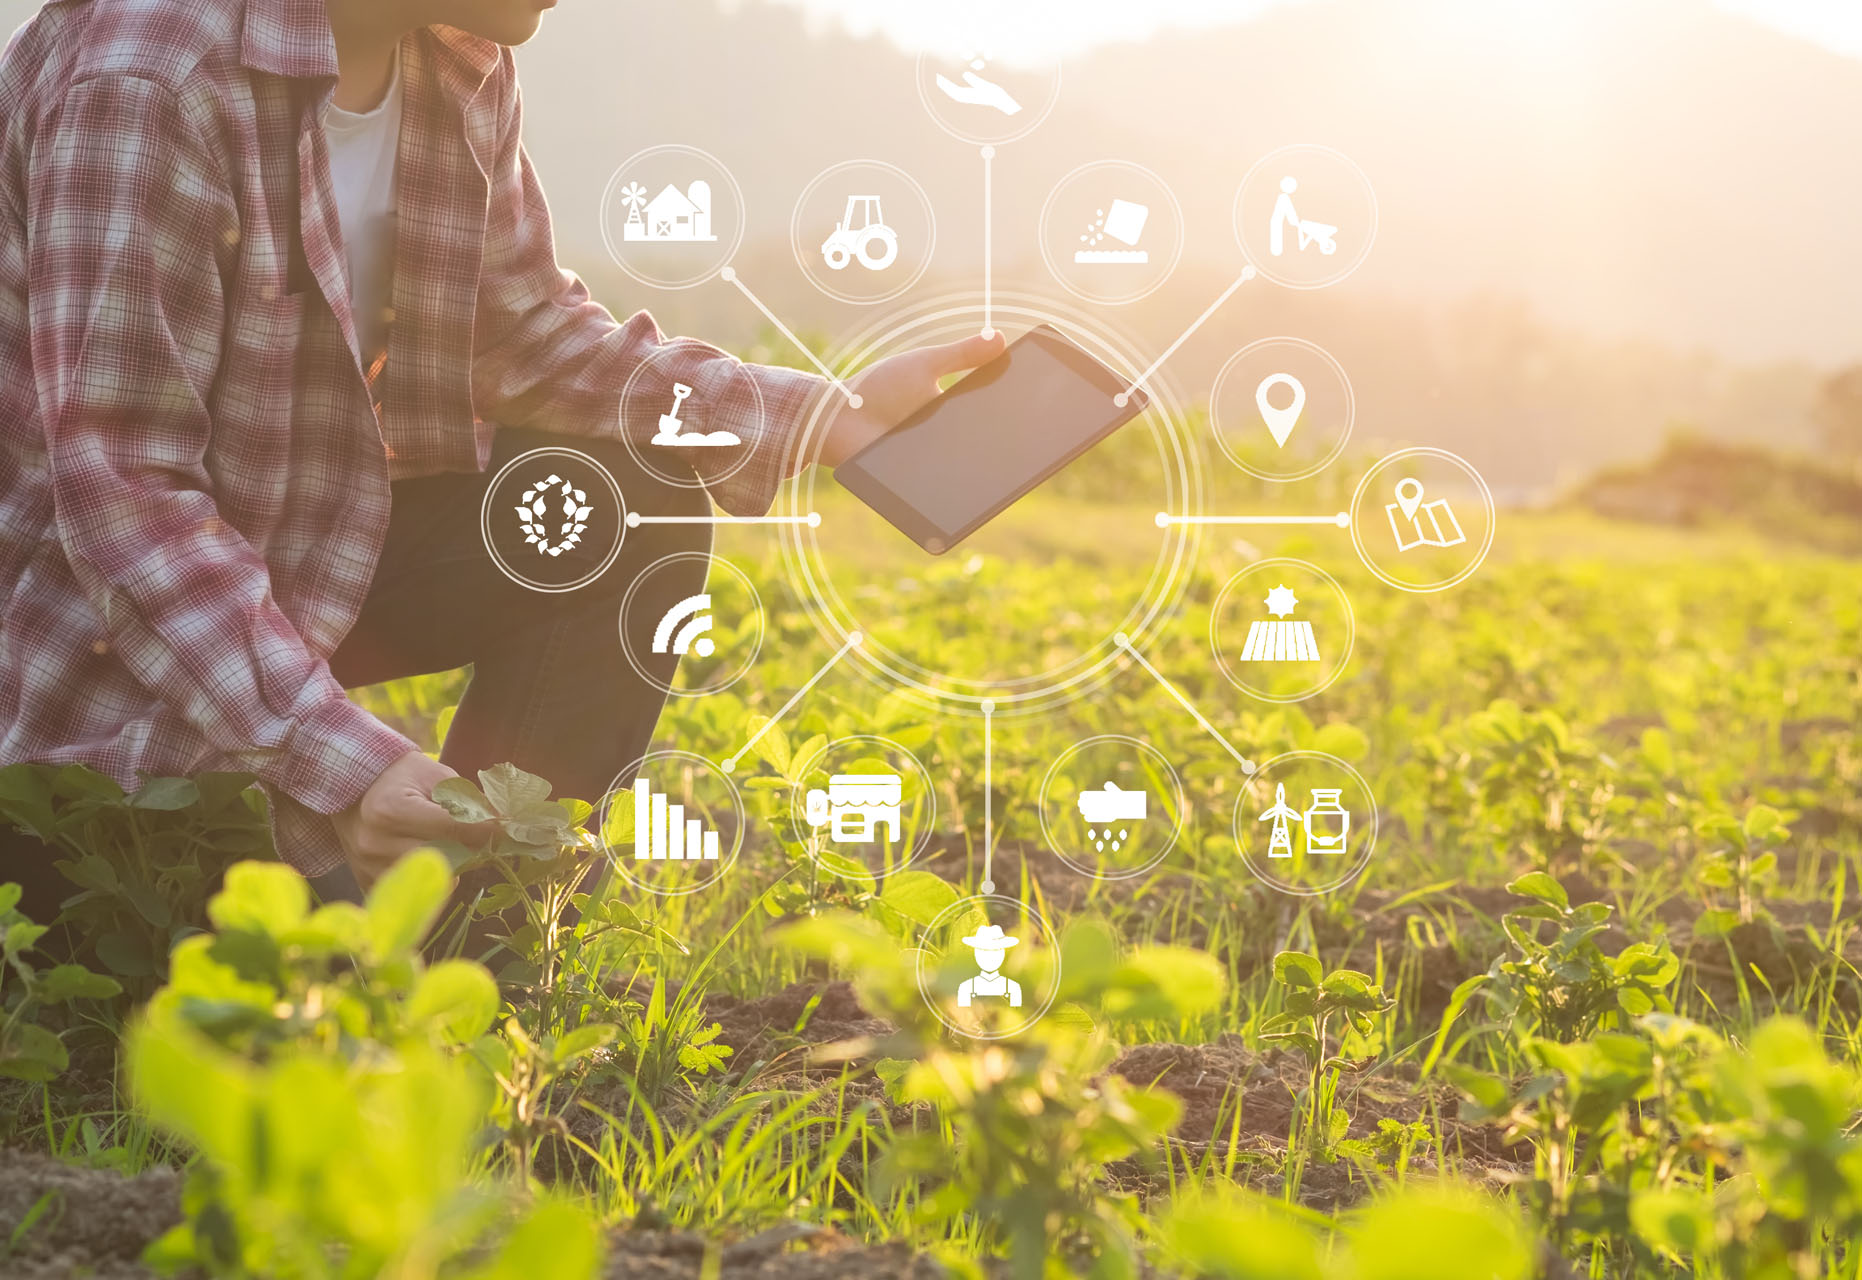 New technologies for Agriculture 4.0